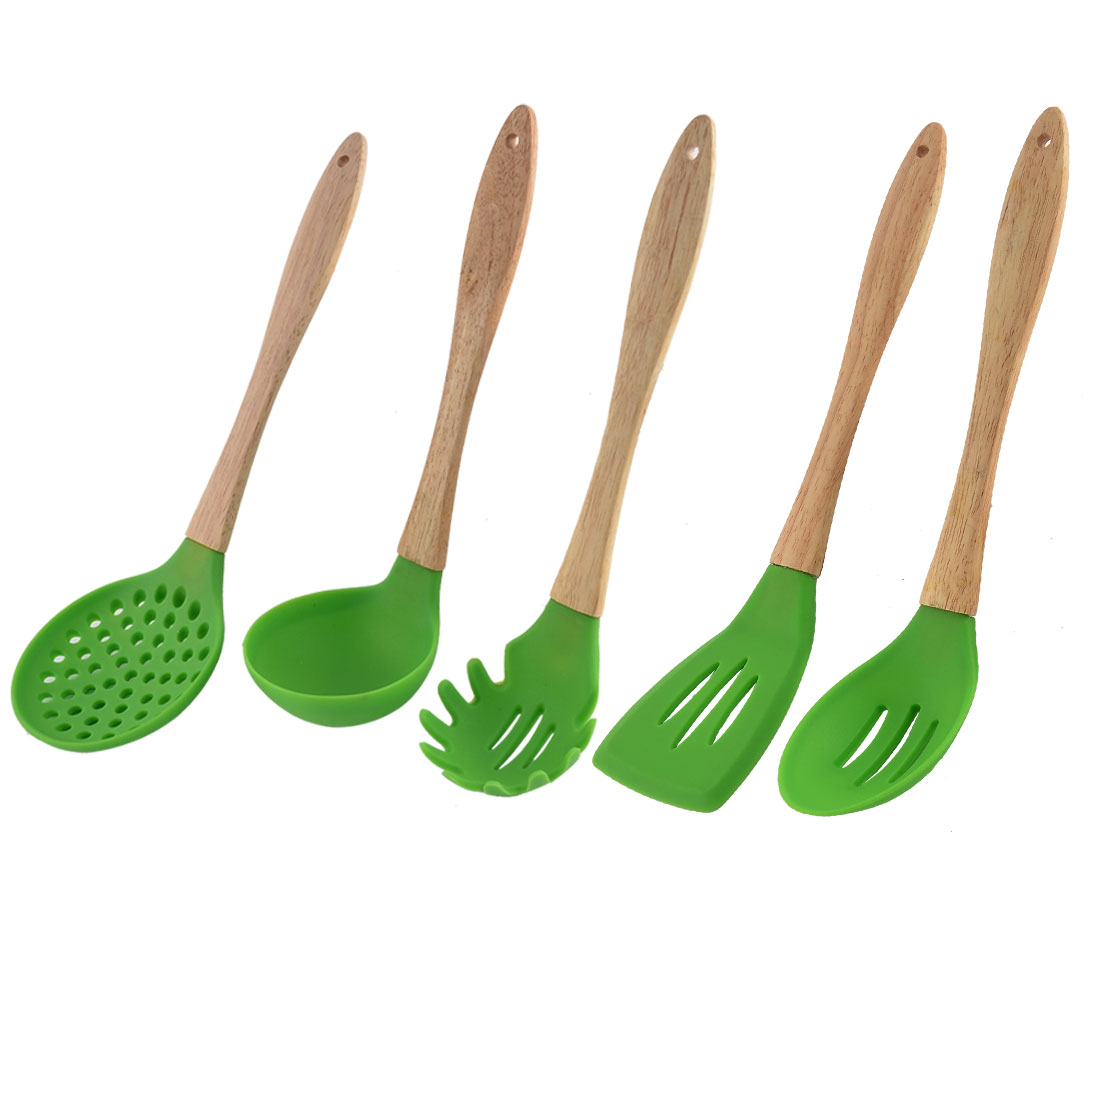 Unique Bargains Wooden Handle Silicone Head Ladle Pancake Turner Kitchen Tool Set 5 in 1